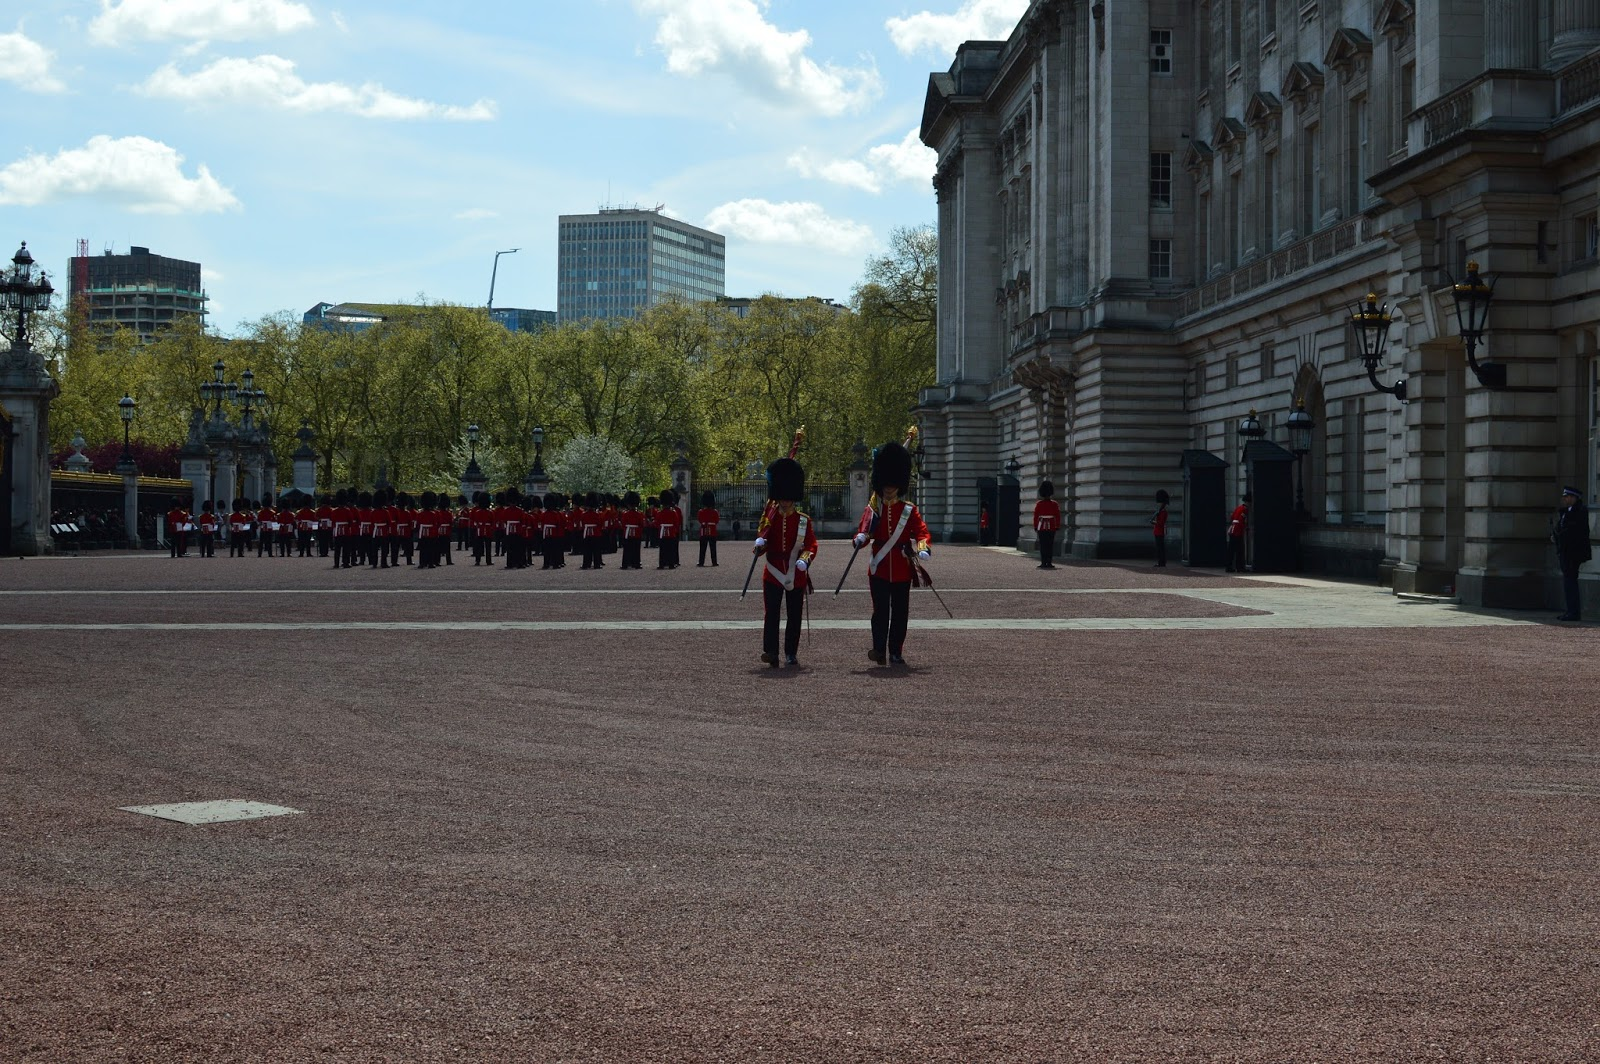 changing of the guards at buckingham palace |top things to do in london | top 10 things to see in London | what to do in London | Free things to do in London | Planning a London vacation